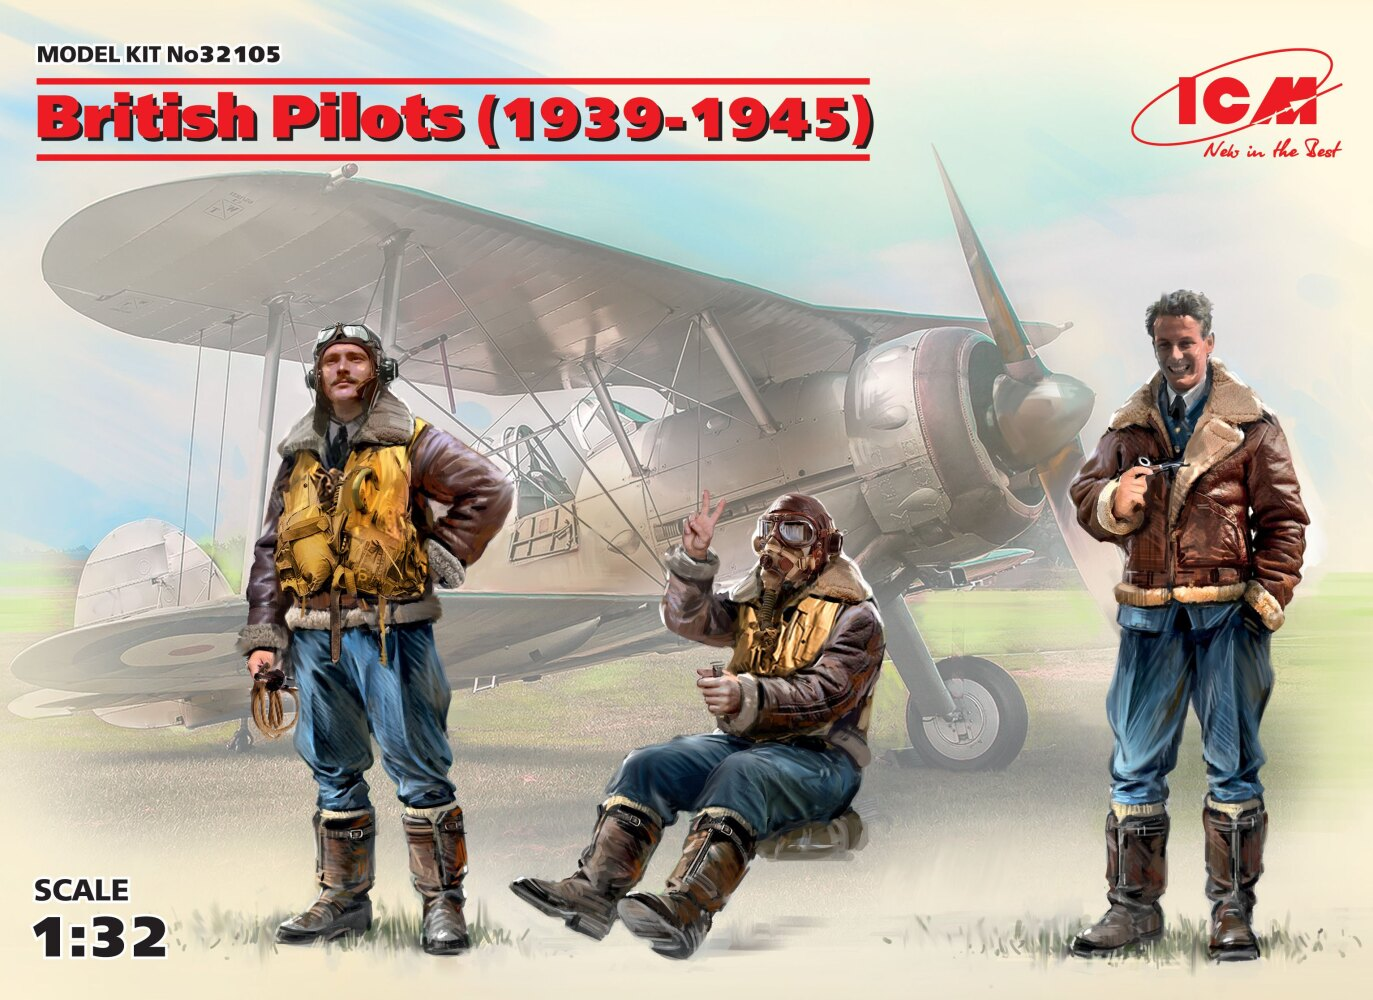 British Pilots (1939-1945) (3 figures)